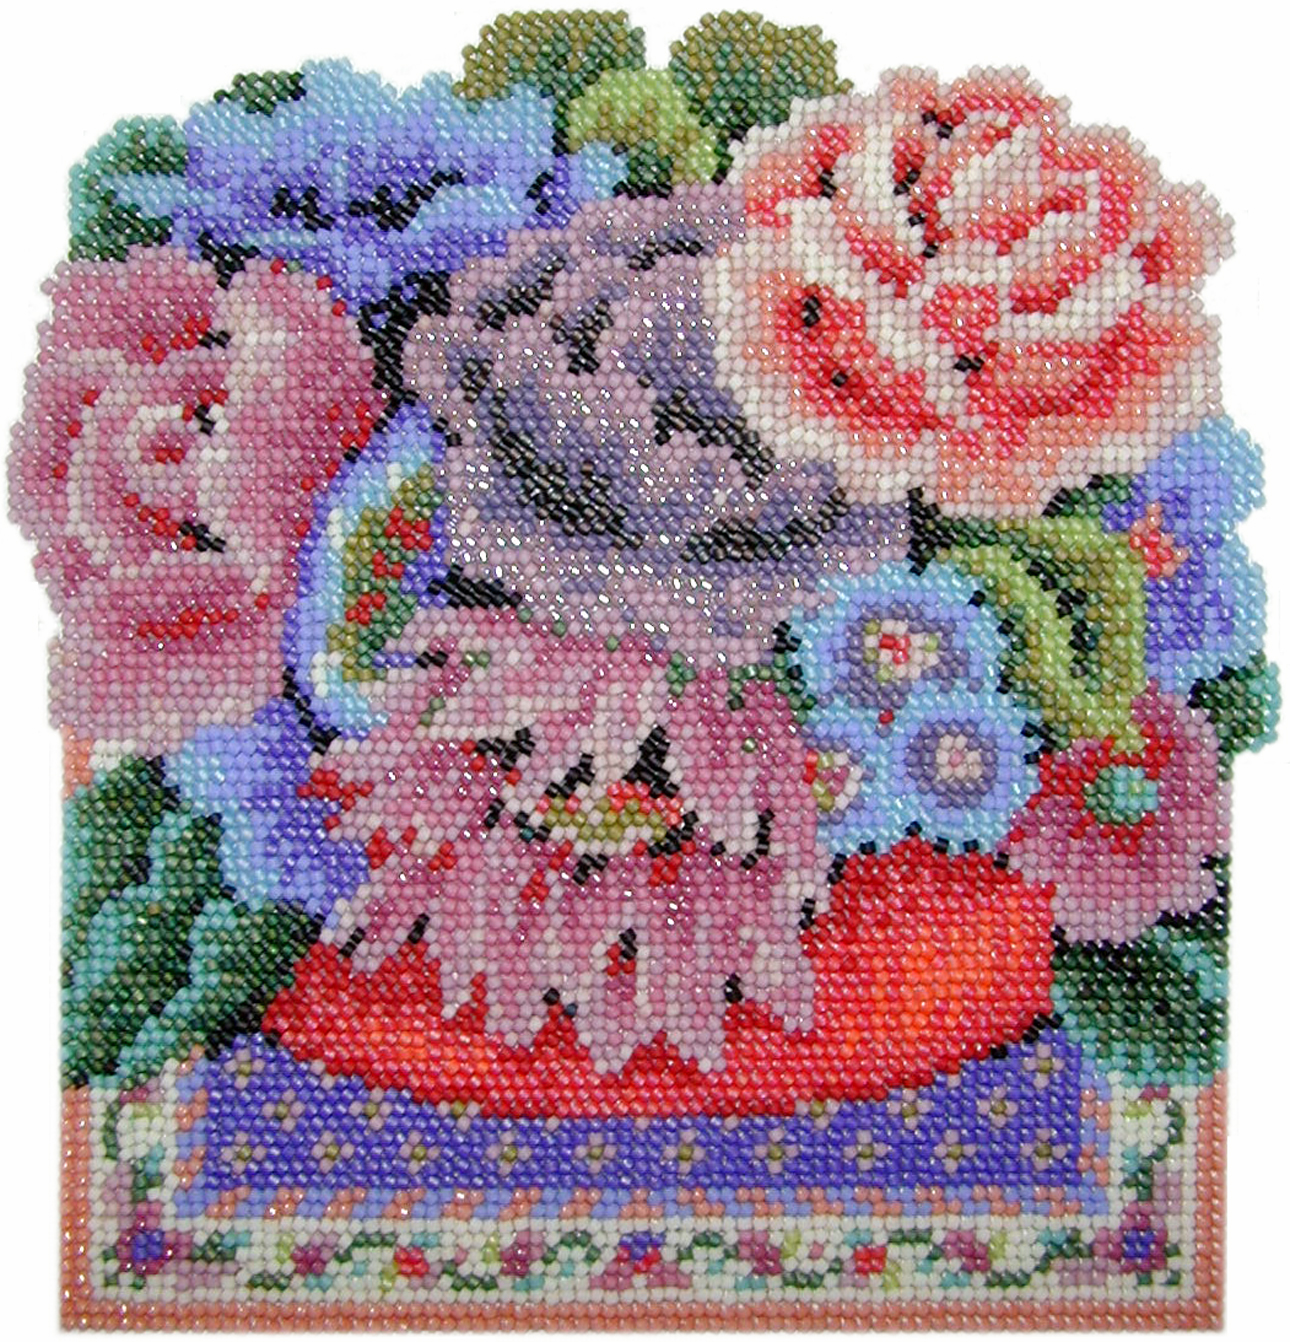 Beaded Needlepoint Tutorials And Designs Beads East